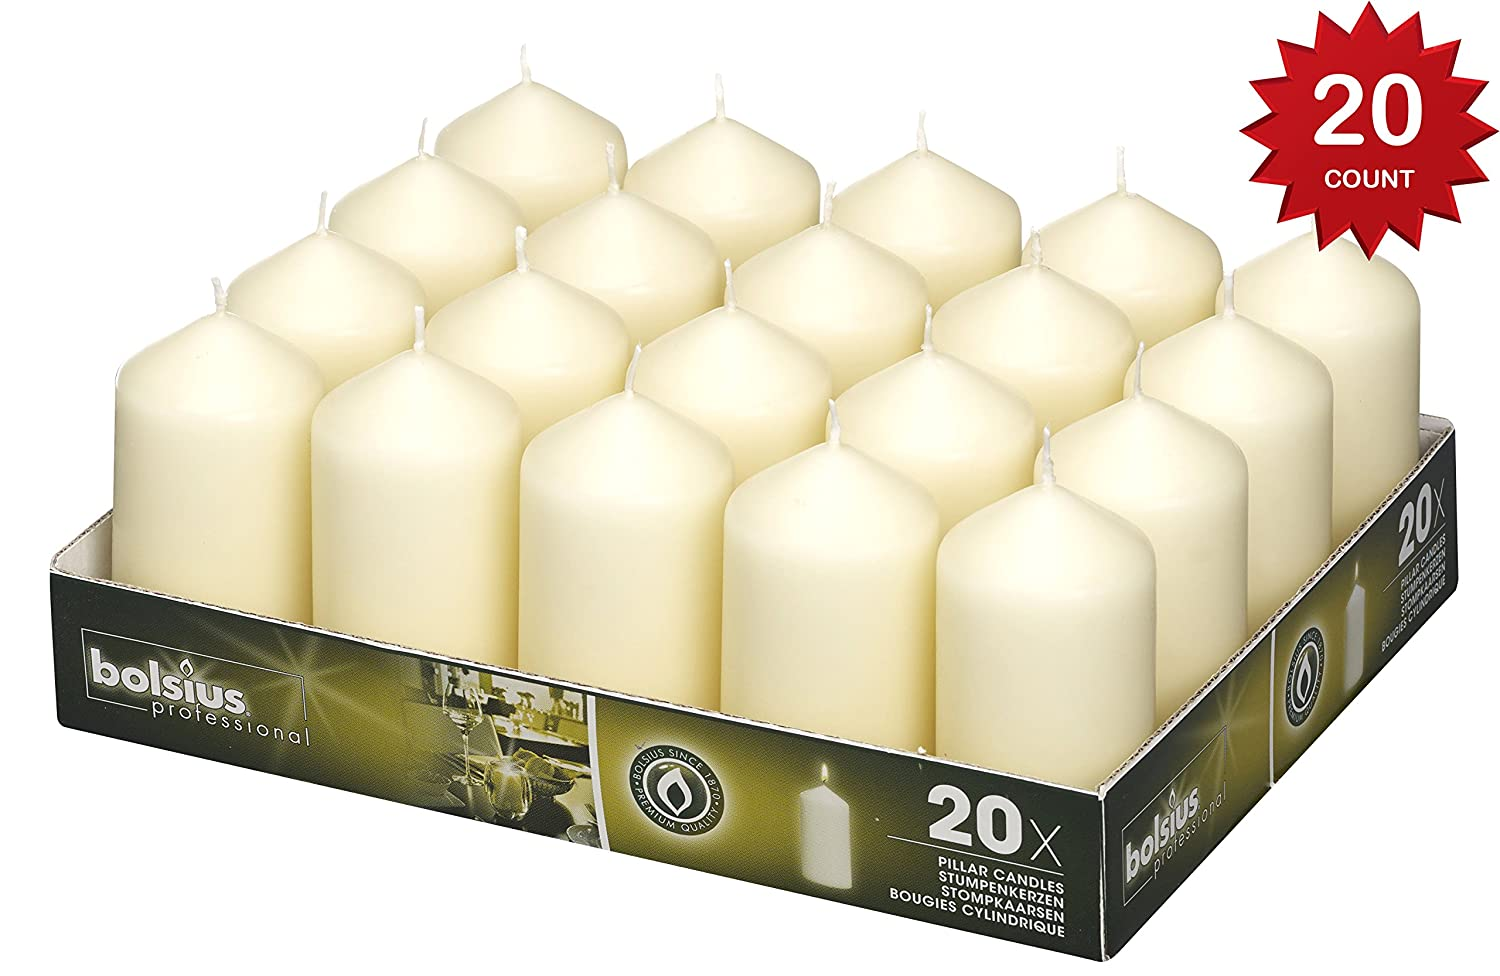 BOLSIUS Set of 20 Ivory Pillar Candles - 18 Hours Burning Time Candle Set - 2-inch x 4-inch Dripless Candle - Perfect for Wedding Candles, Parties and Special Occasions